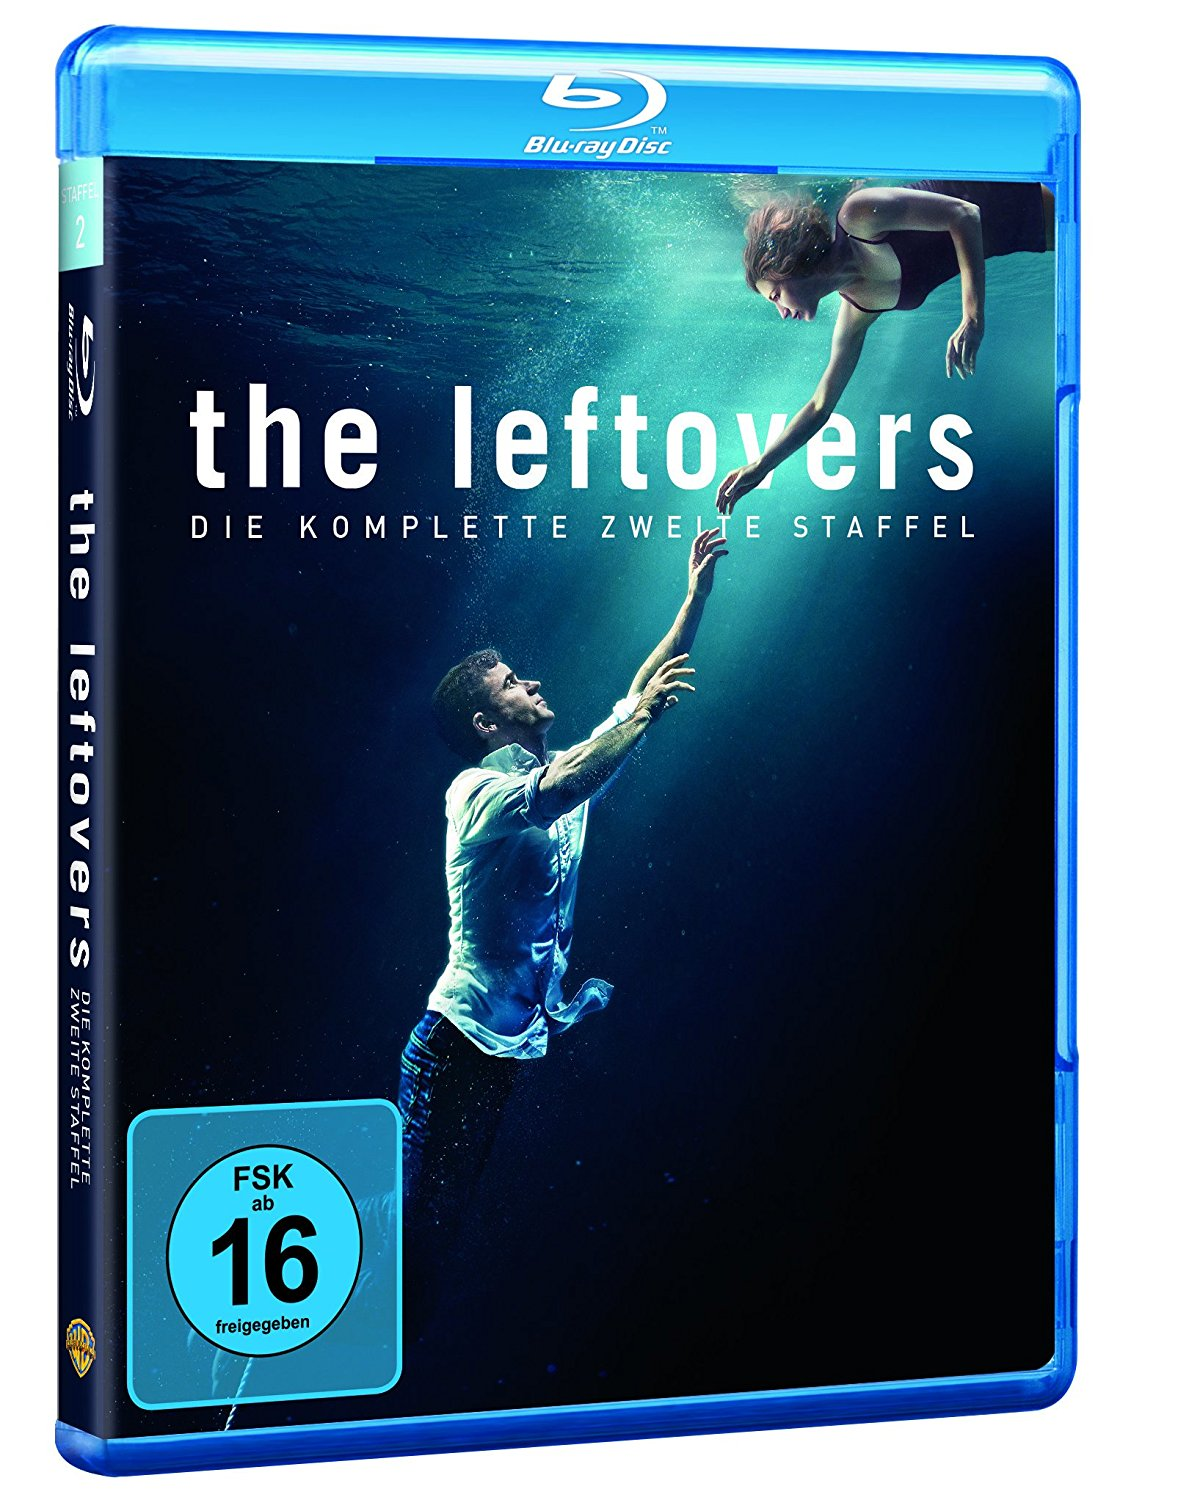 The Leftovers S01-S02 Complete German Dl 720p BluRay x264-iNtentiOn